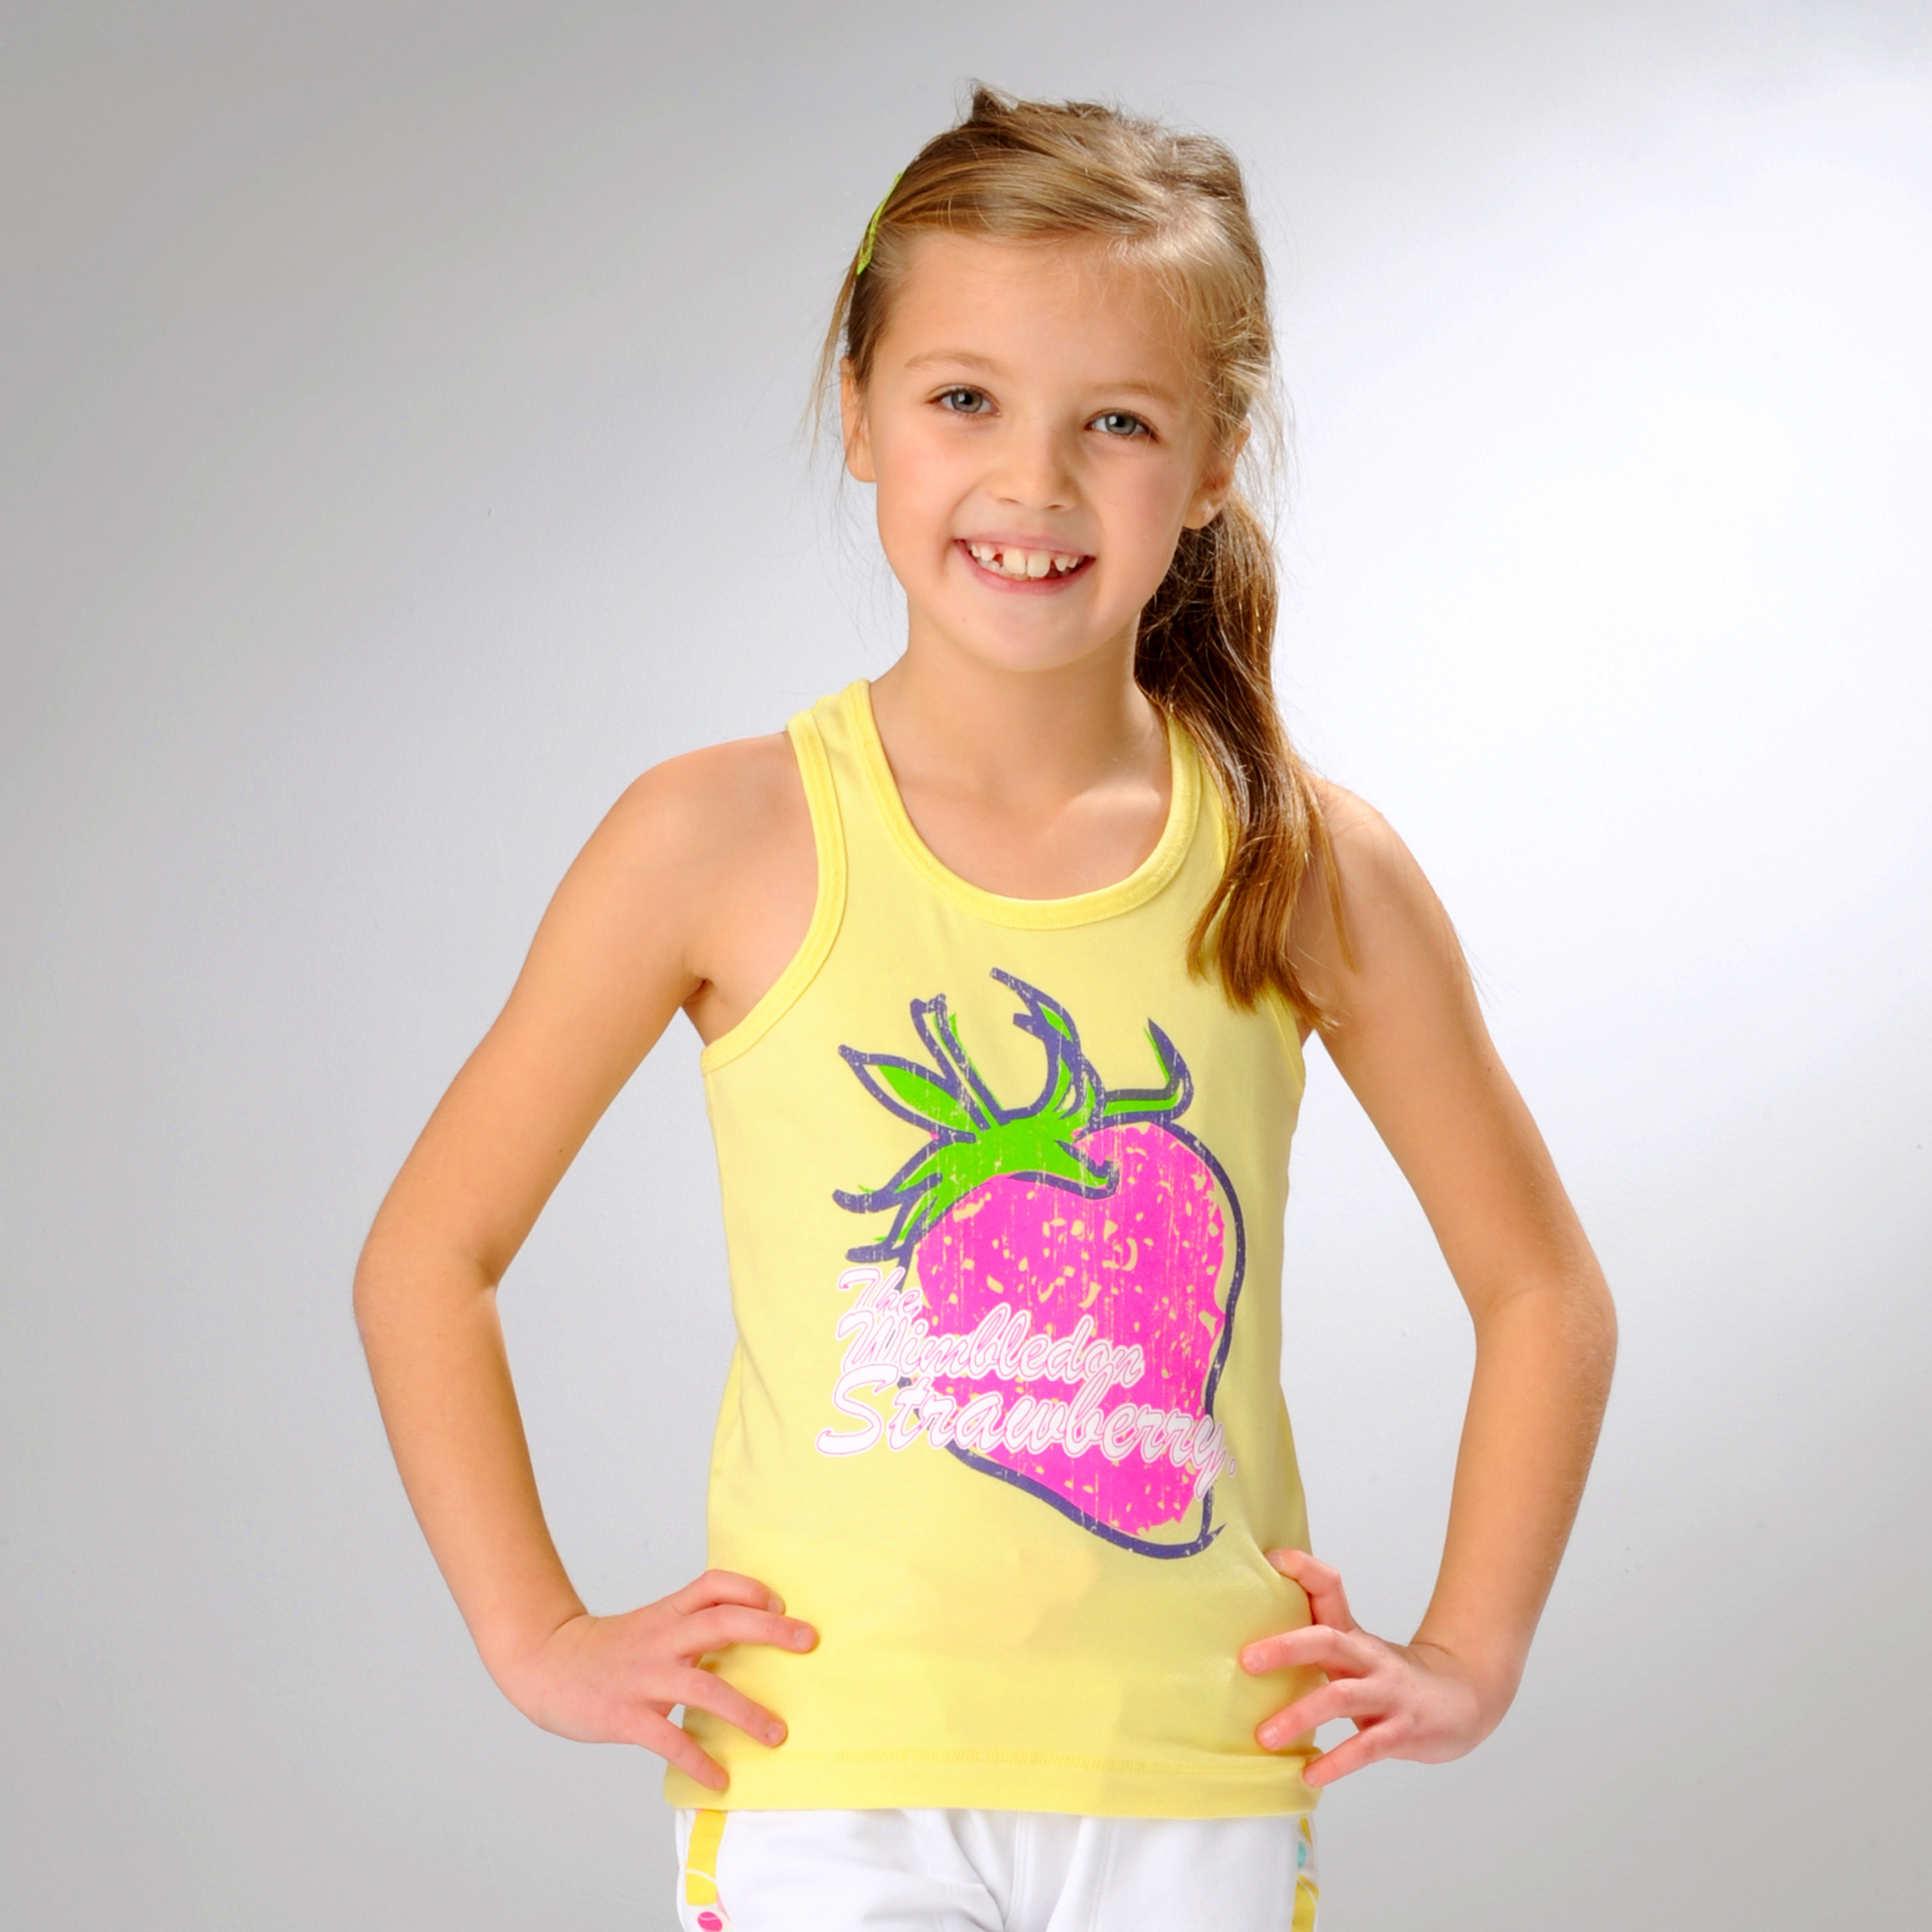 Wimbledon Strawberry Print Vest - Yellow - Girls